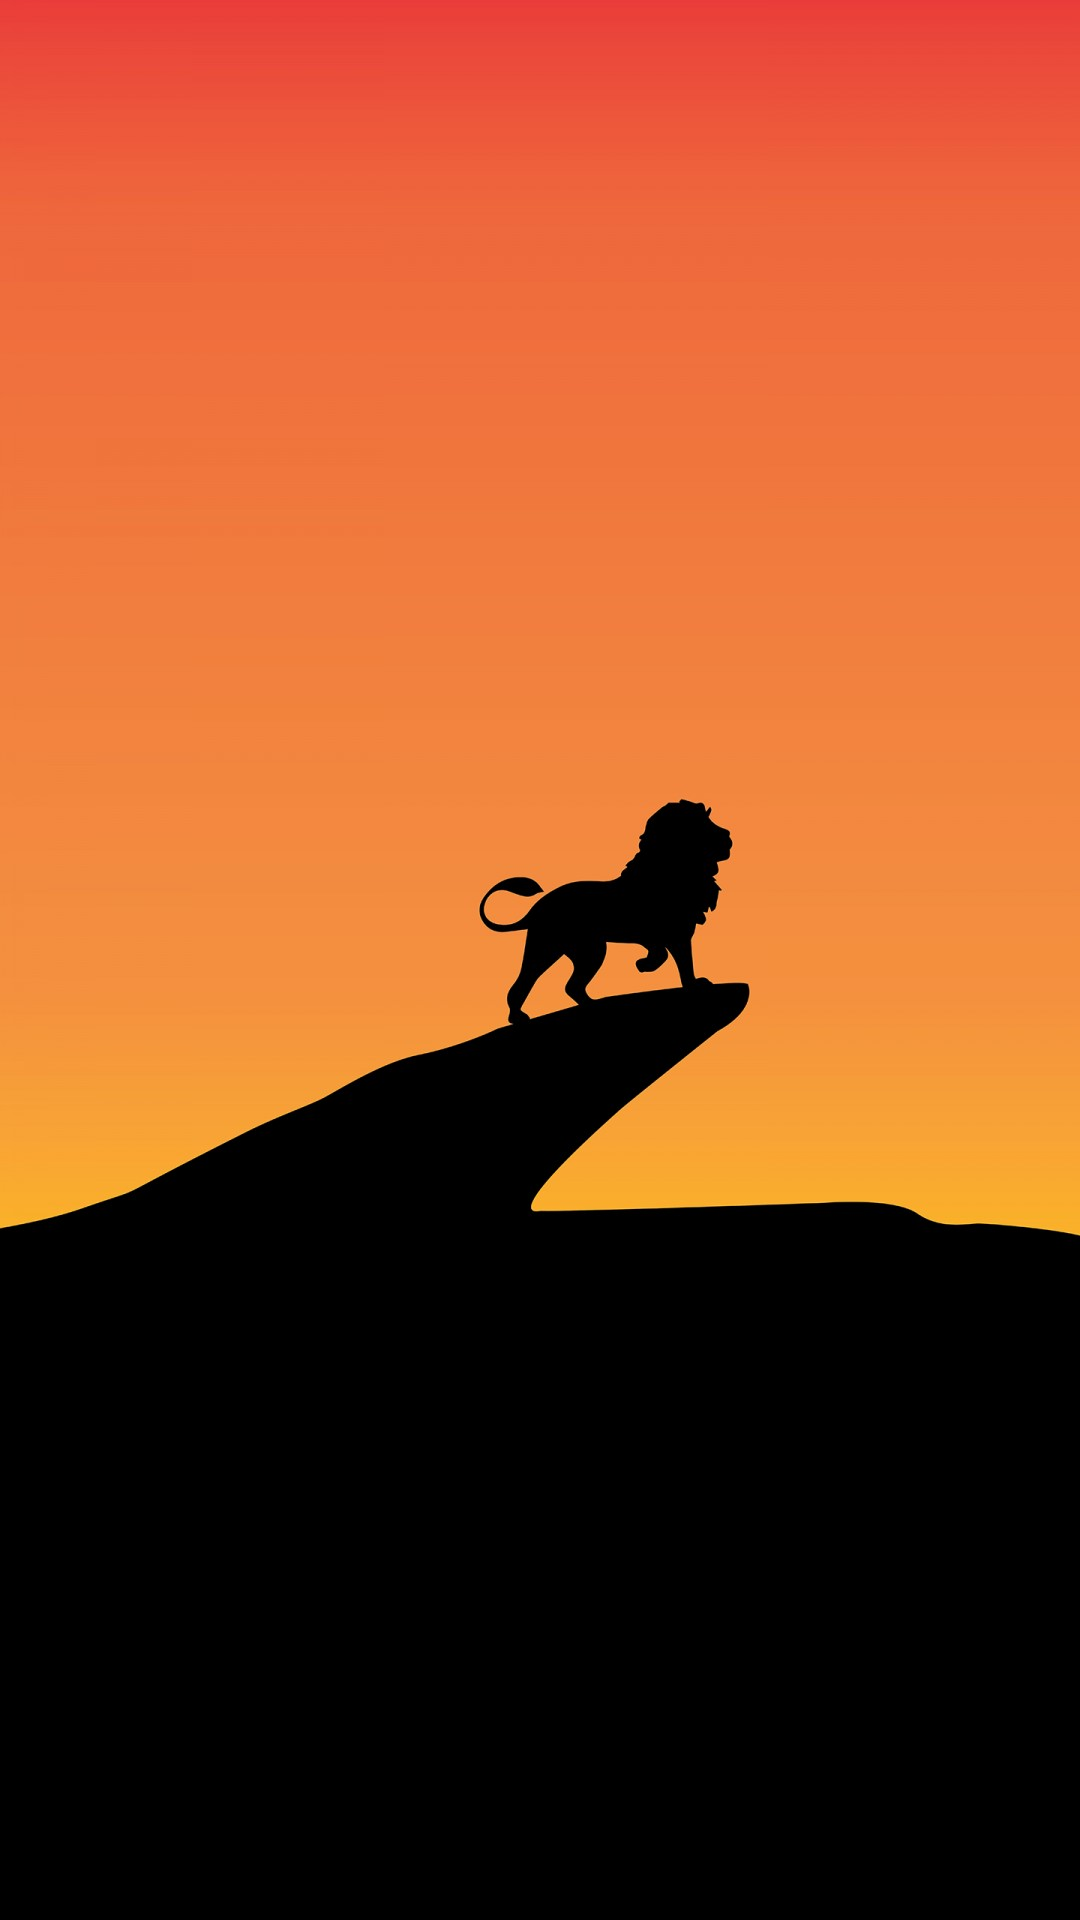 Lion Animal Wallpaper Lion King Silhouette Minimal 4k 8k Wallpapers Hd